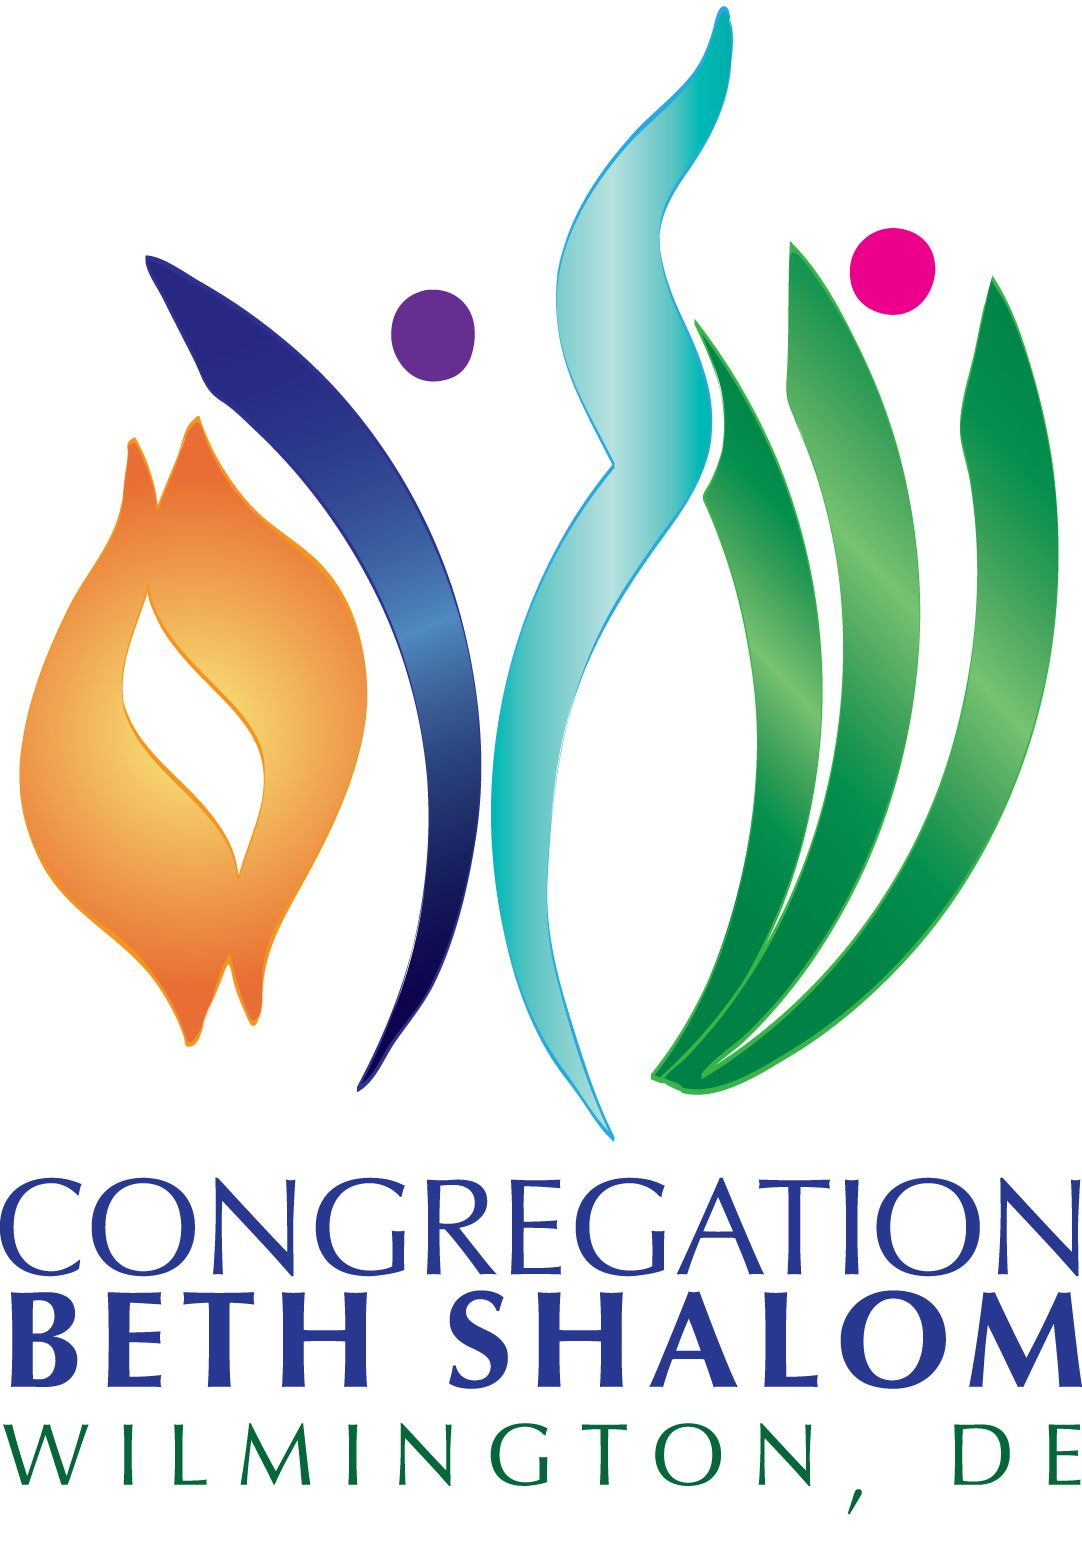 Congregation Beth Shalom [Egalitarian Conservative]